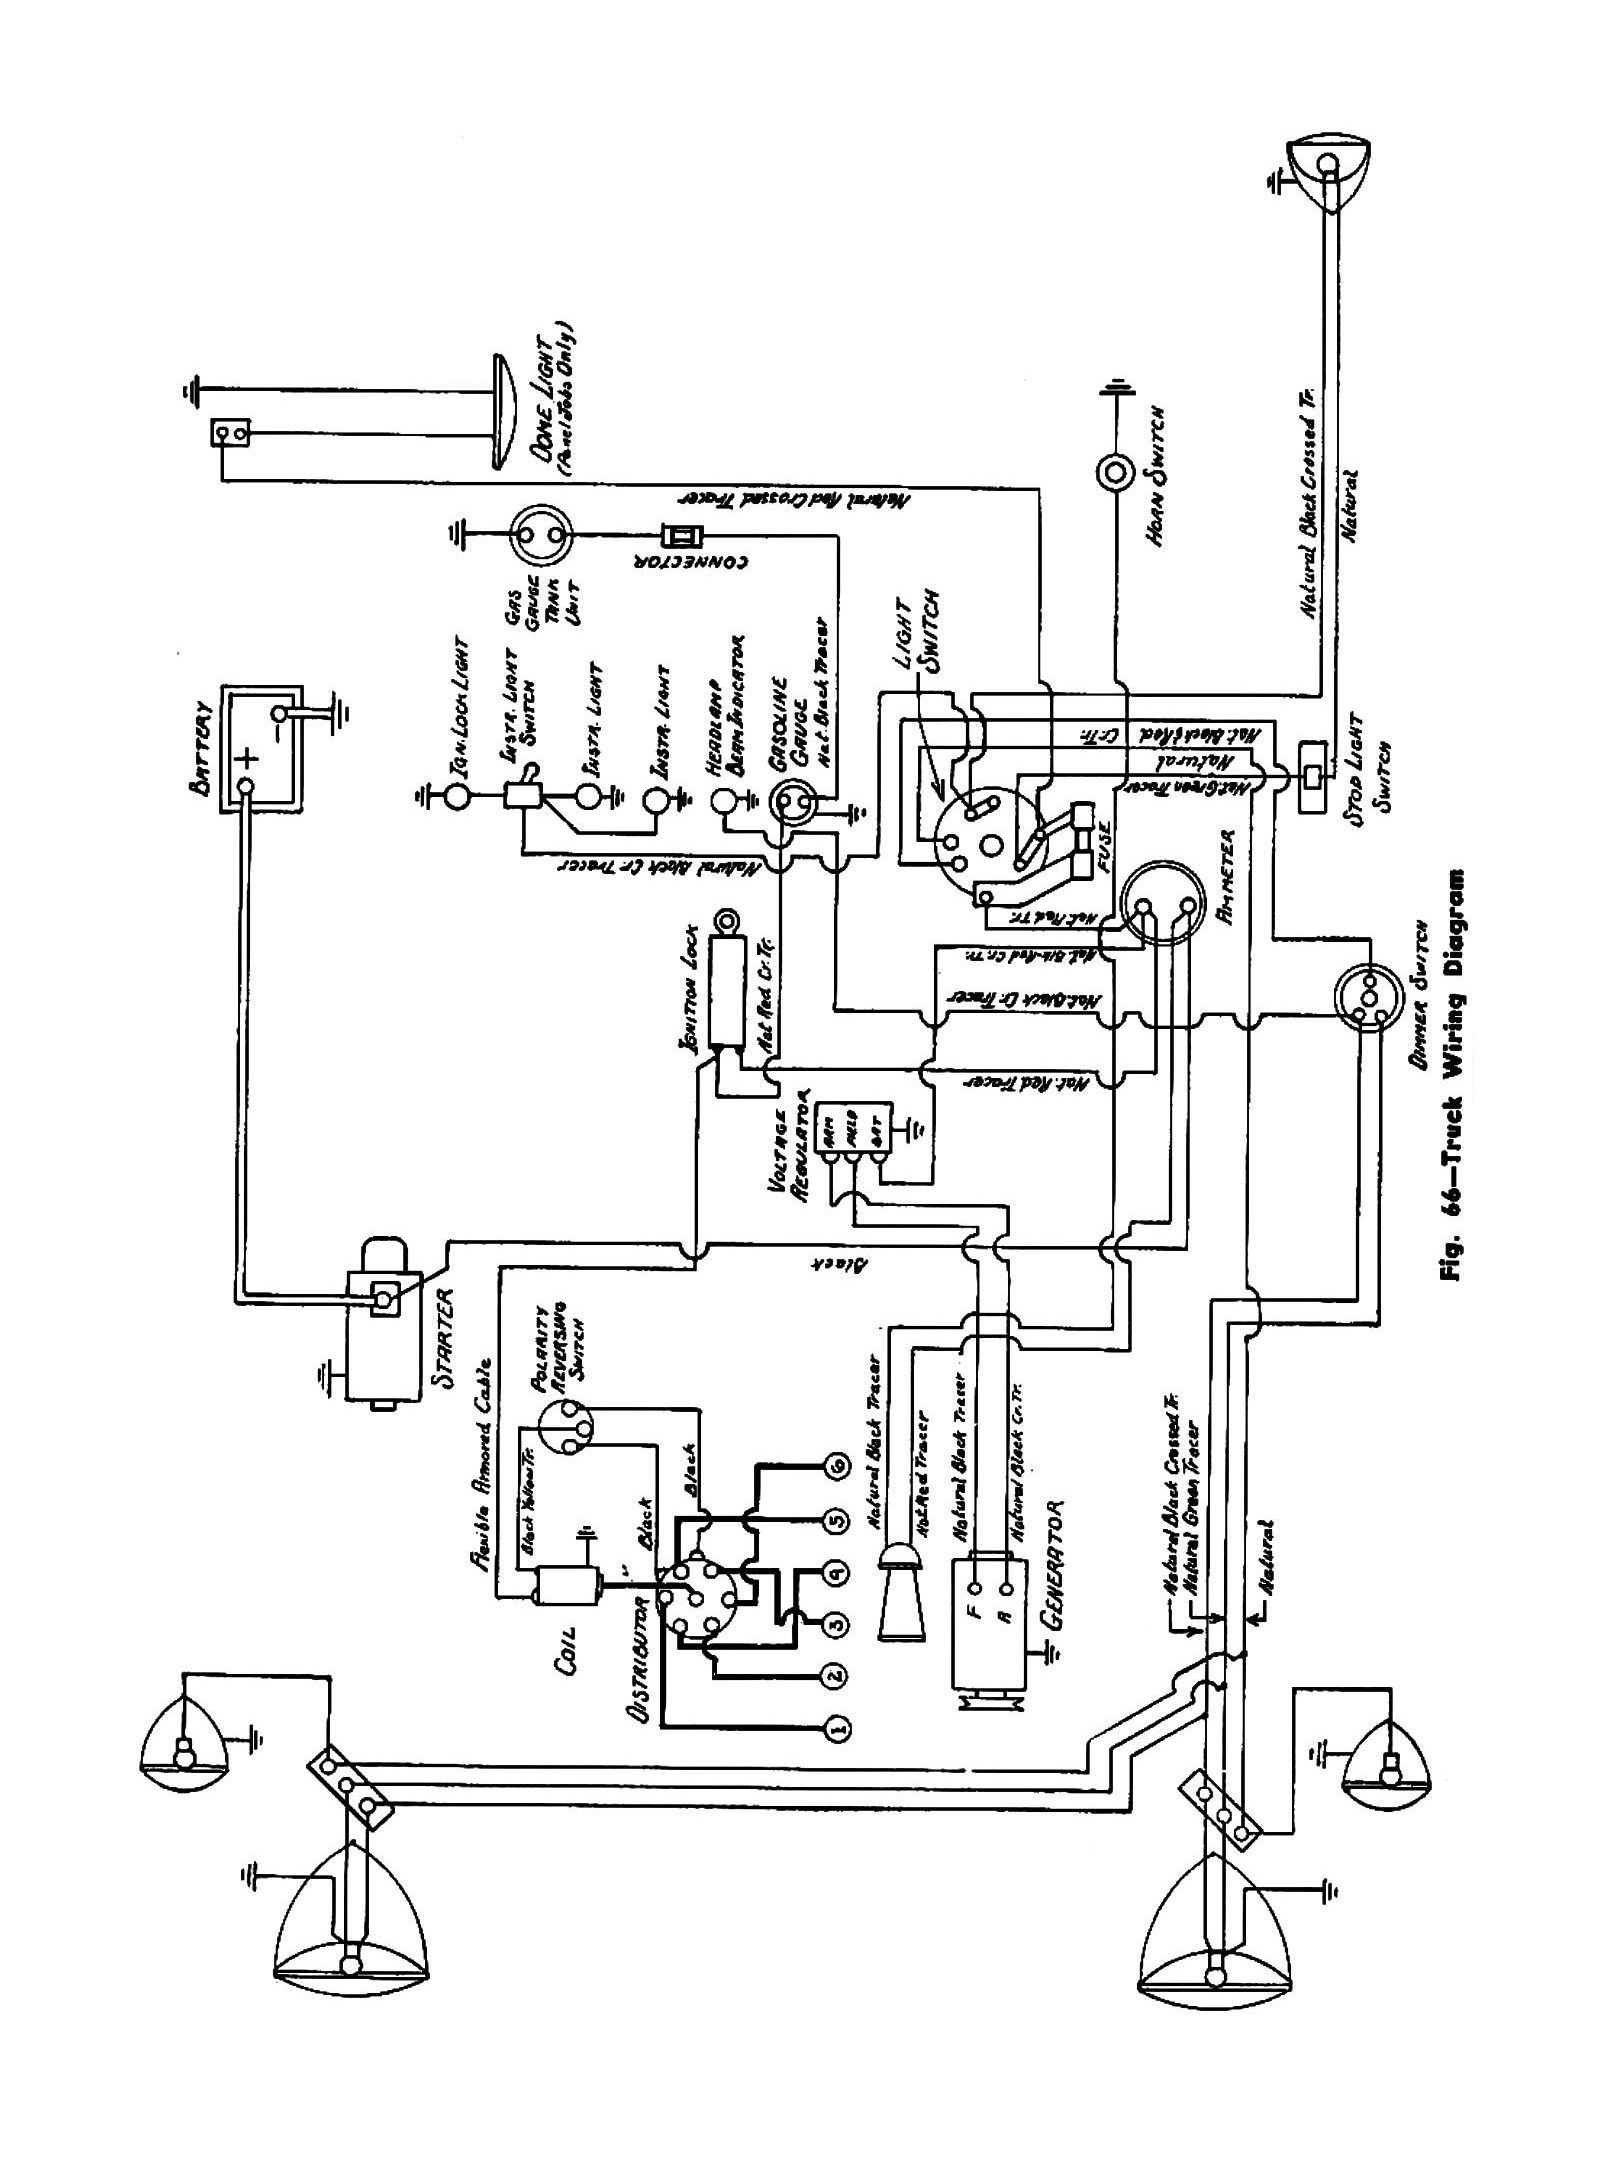 hight resolution of chevy truck wiring diagram